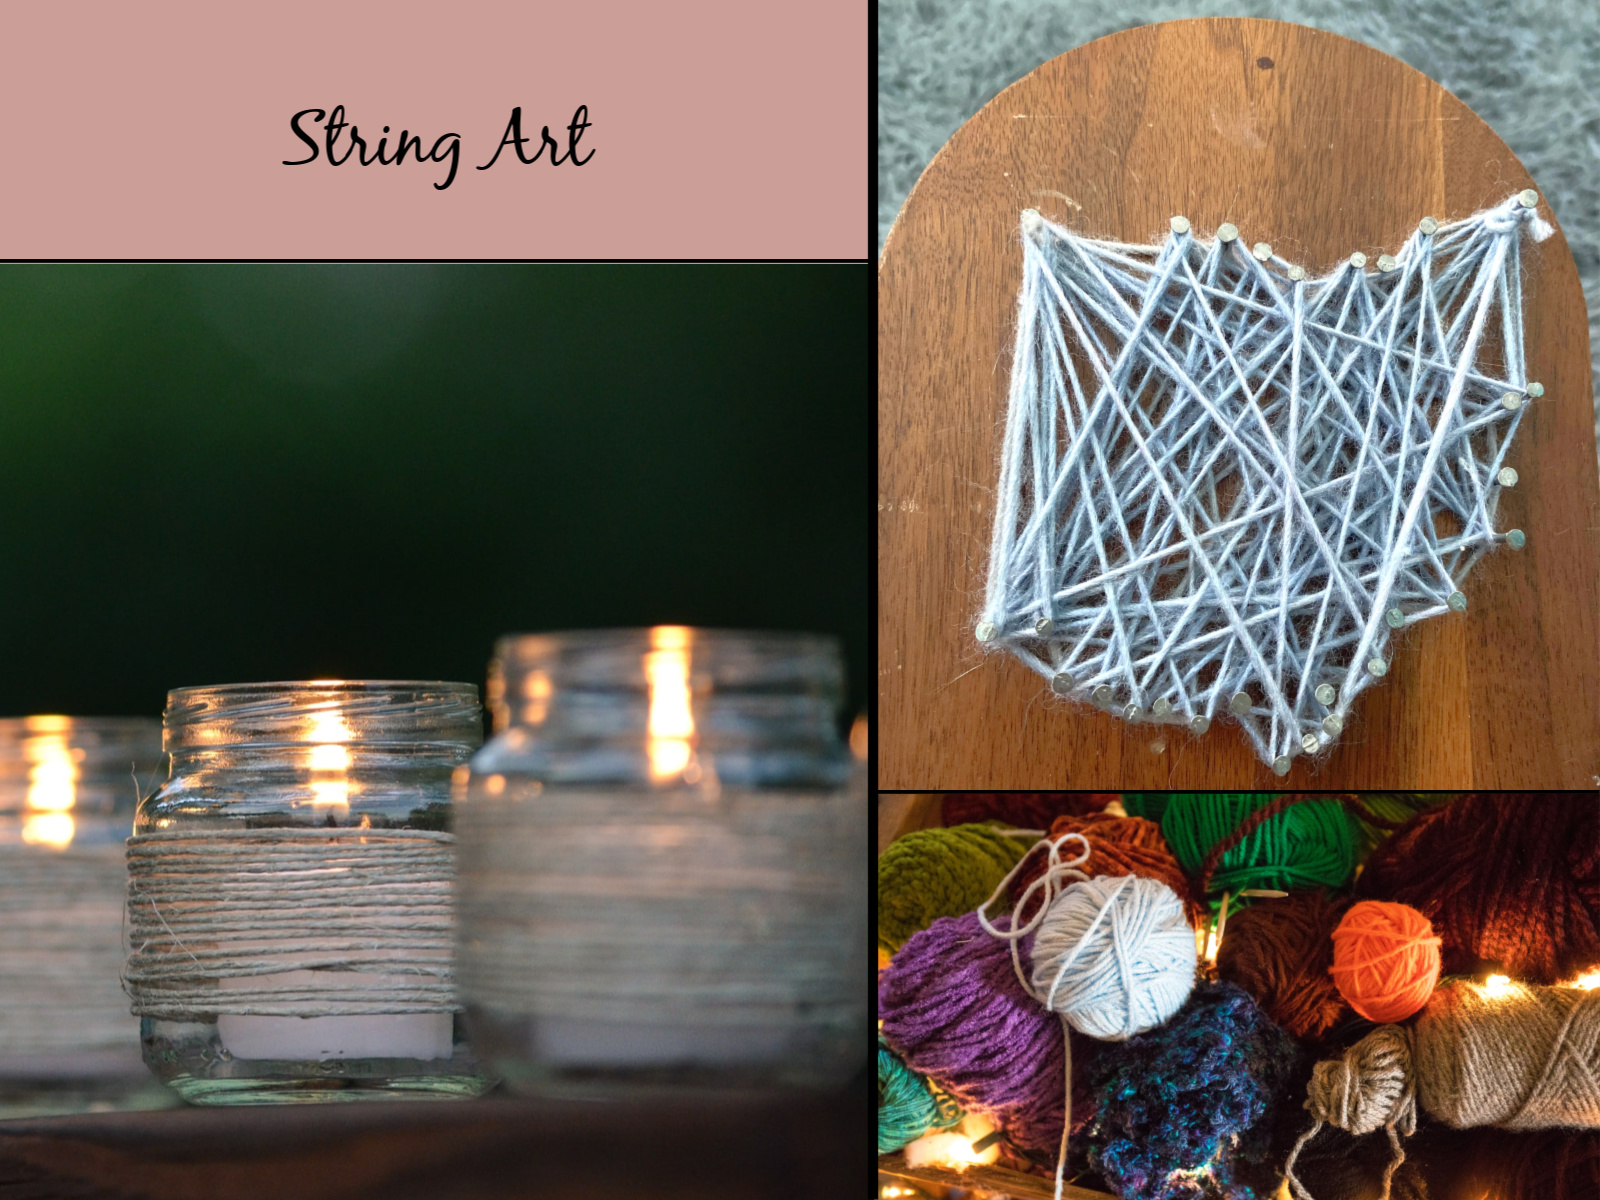 Images of string art decor DIY projects